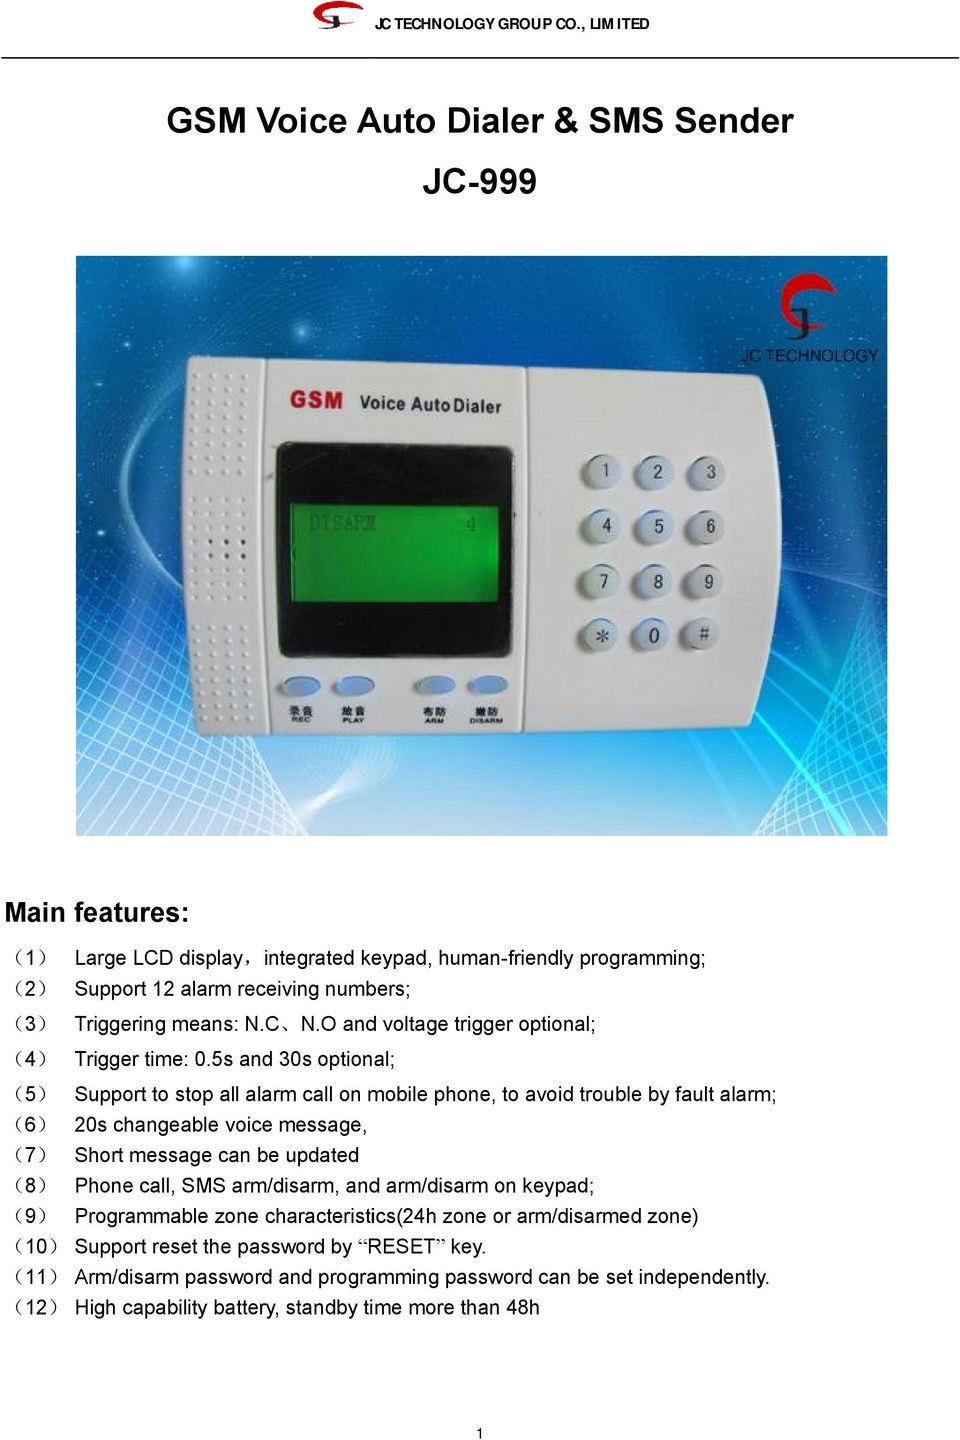 5s and 30s optional; (5) Support to stop all alarm call on mobile phone, to avoid trouble by fault alarm; (6) 20s changeable voice message, (7) Short message can be updated (8) Phone